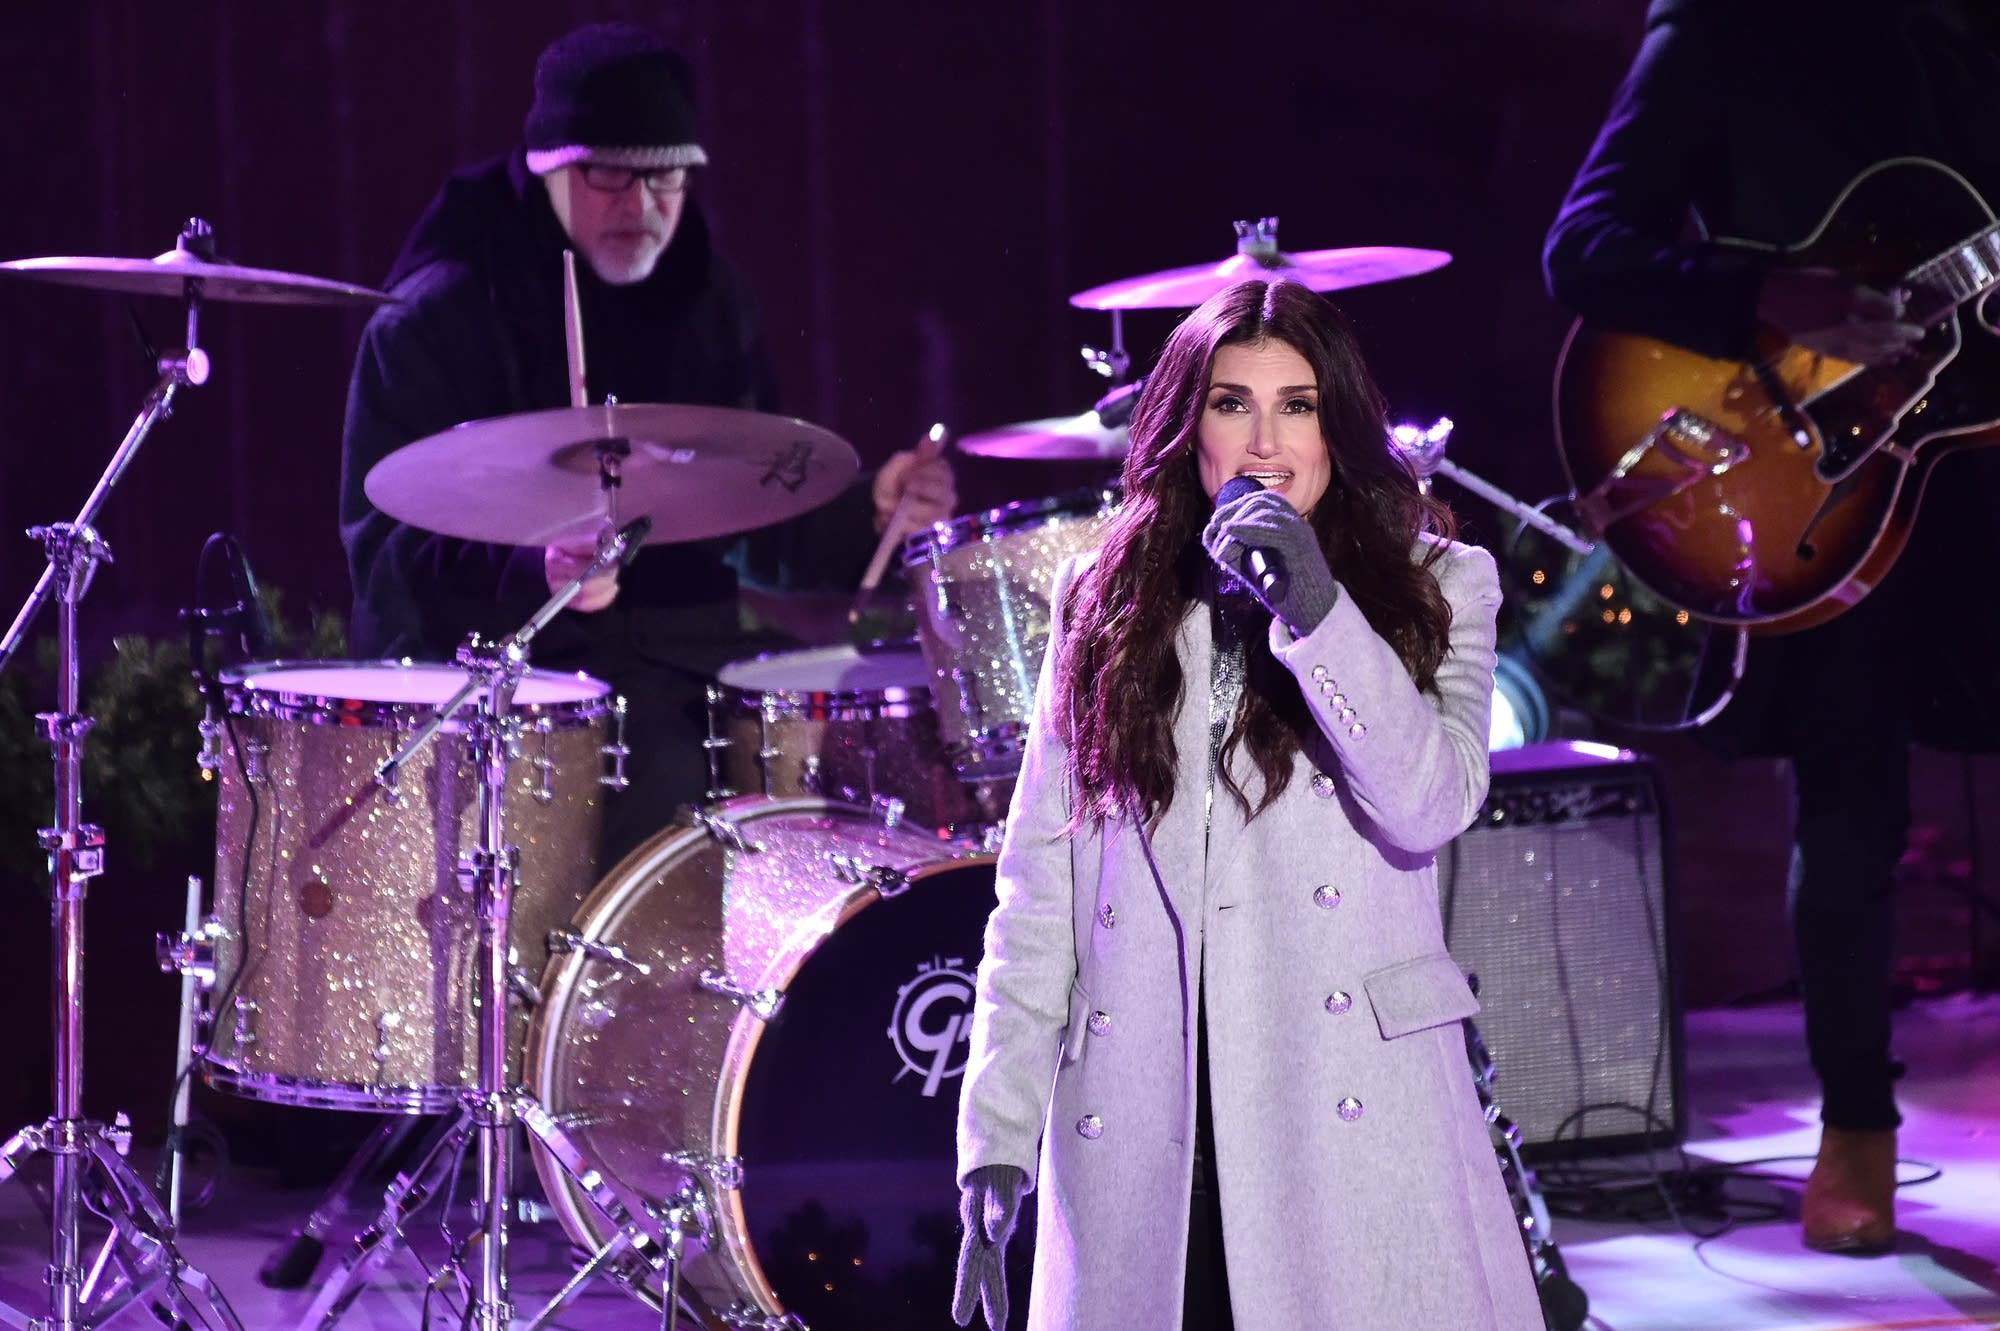 Idina Menzel performing in New York